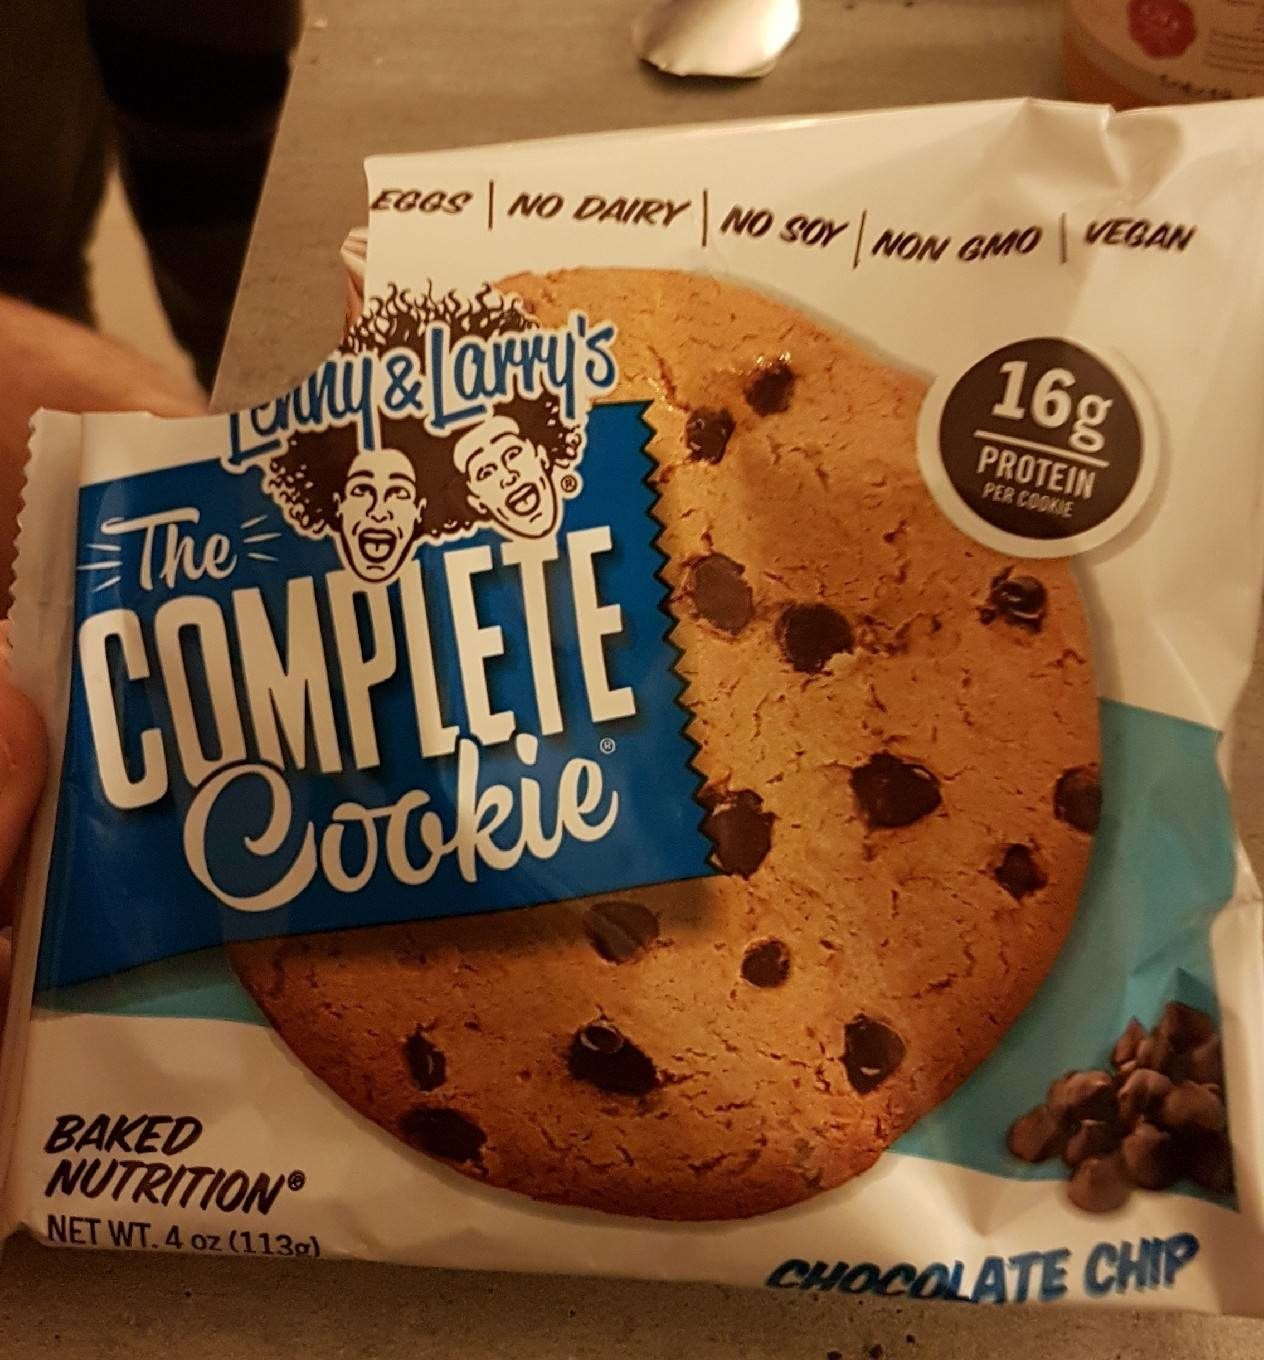 The Complete Cookie Chocolate Chip - Lenny & Larry's - Product